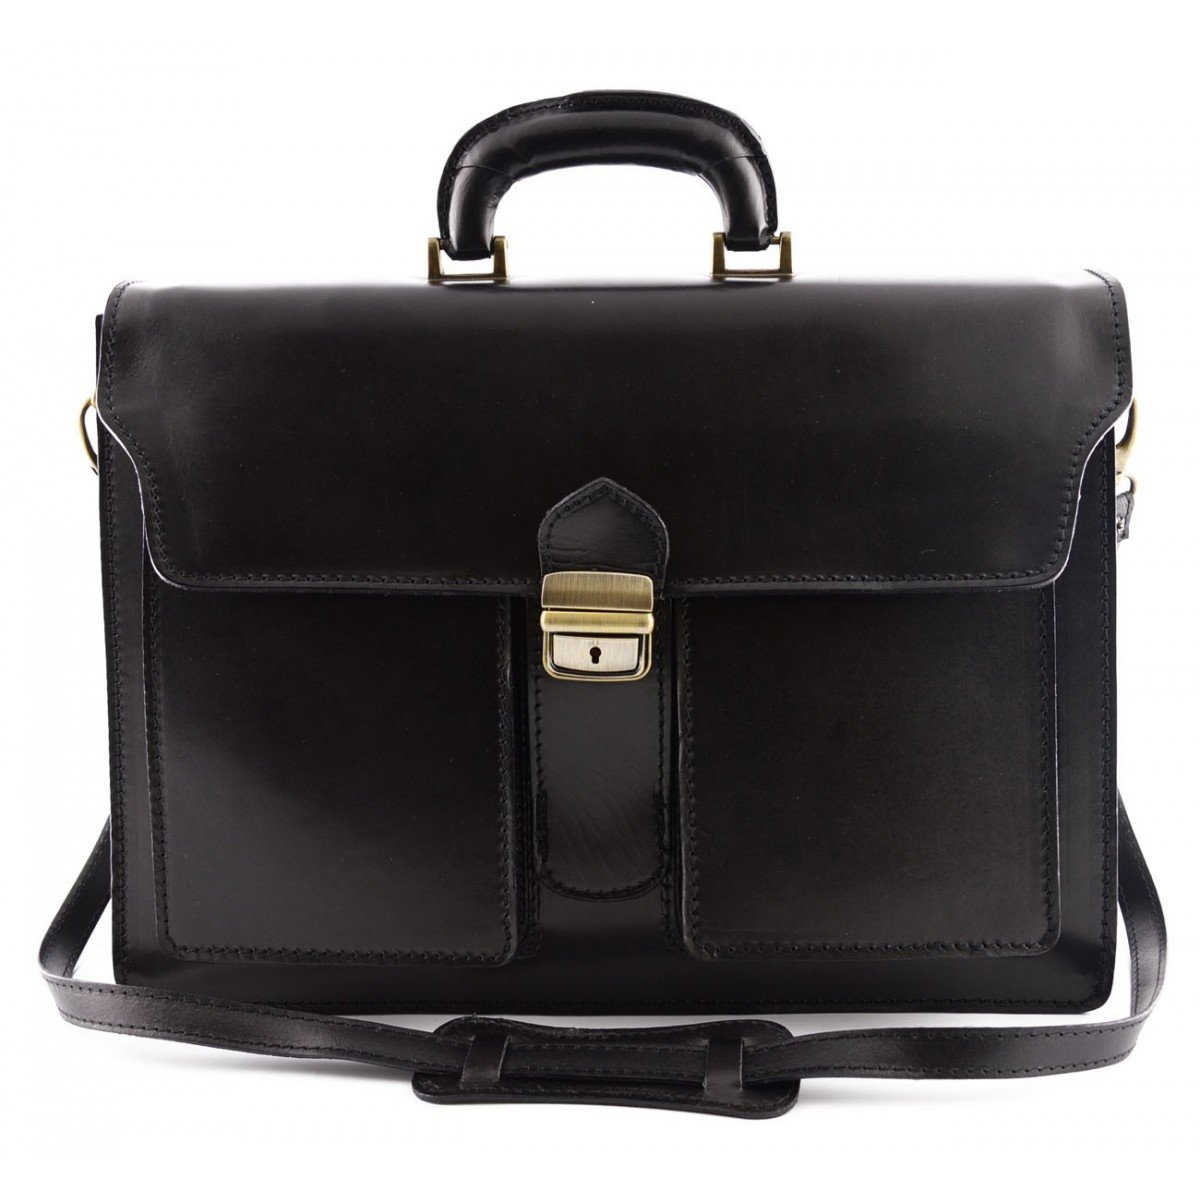 Made In Italy Genuine Leather Professional Briefcase 3 Compartments And 2 Pockets Color Black - Business Bag   B0177FAVWC